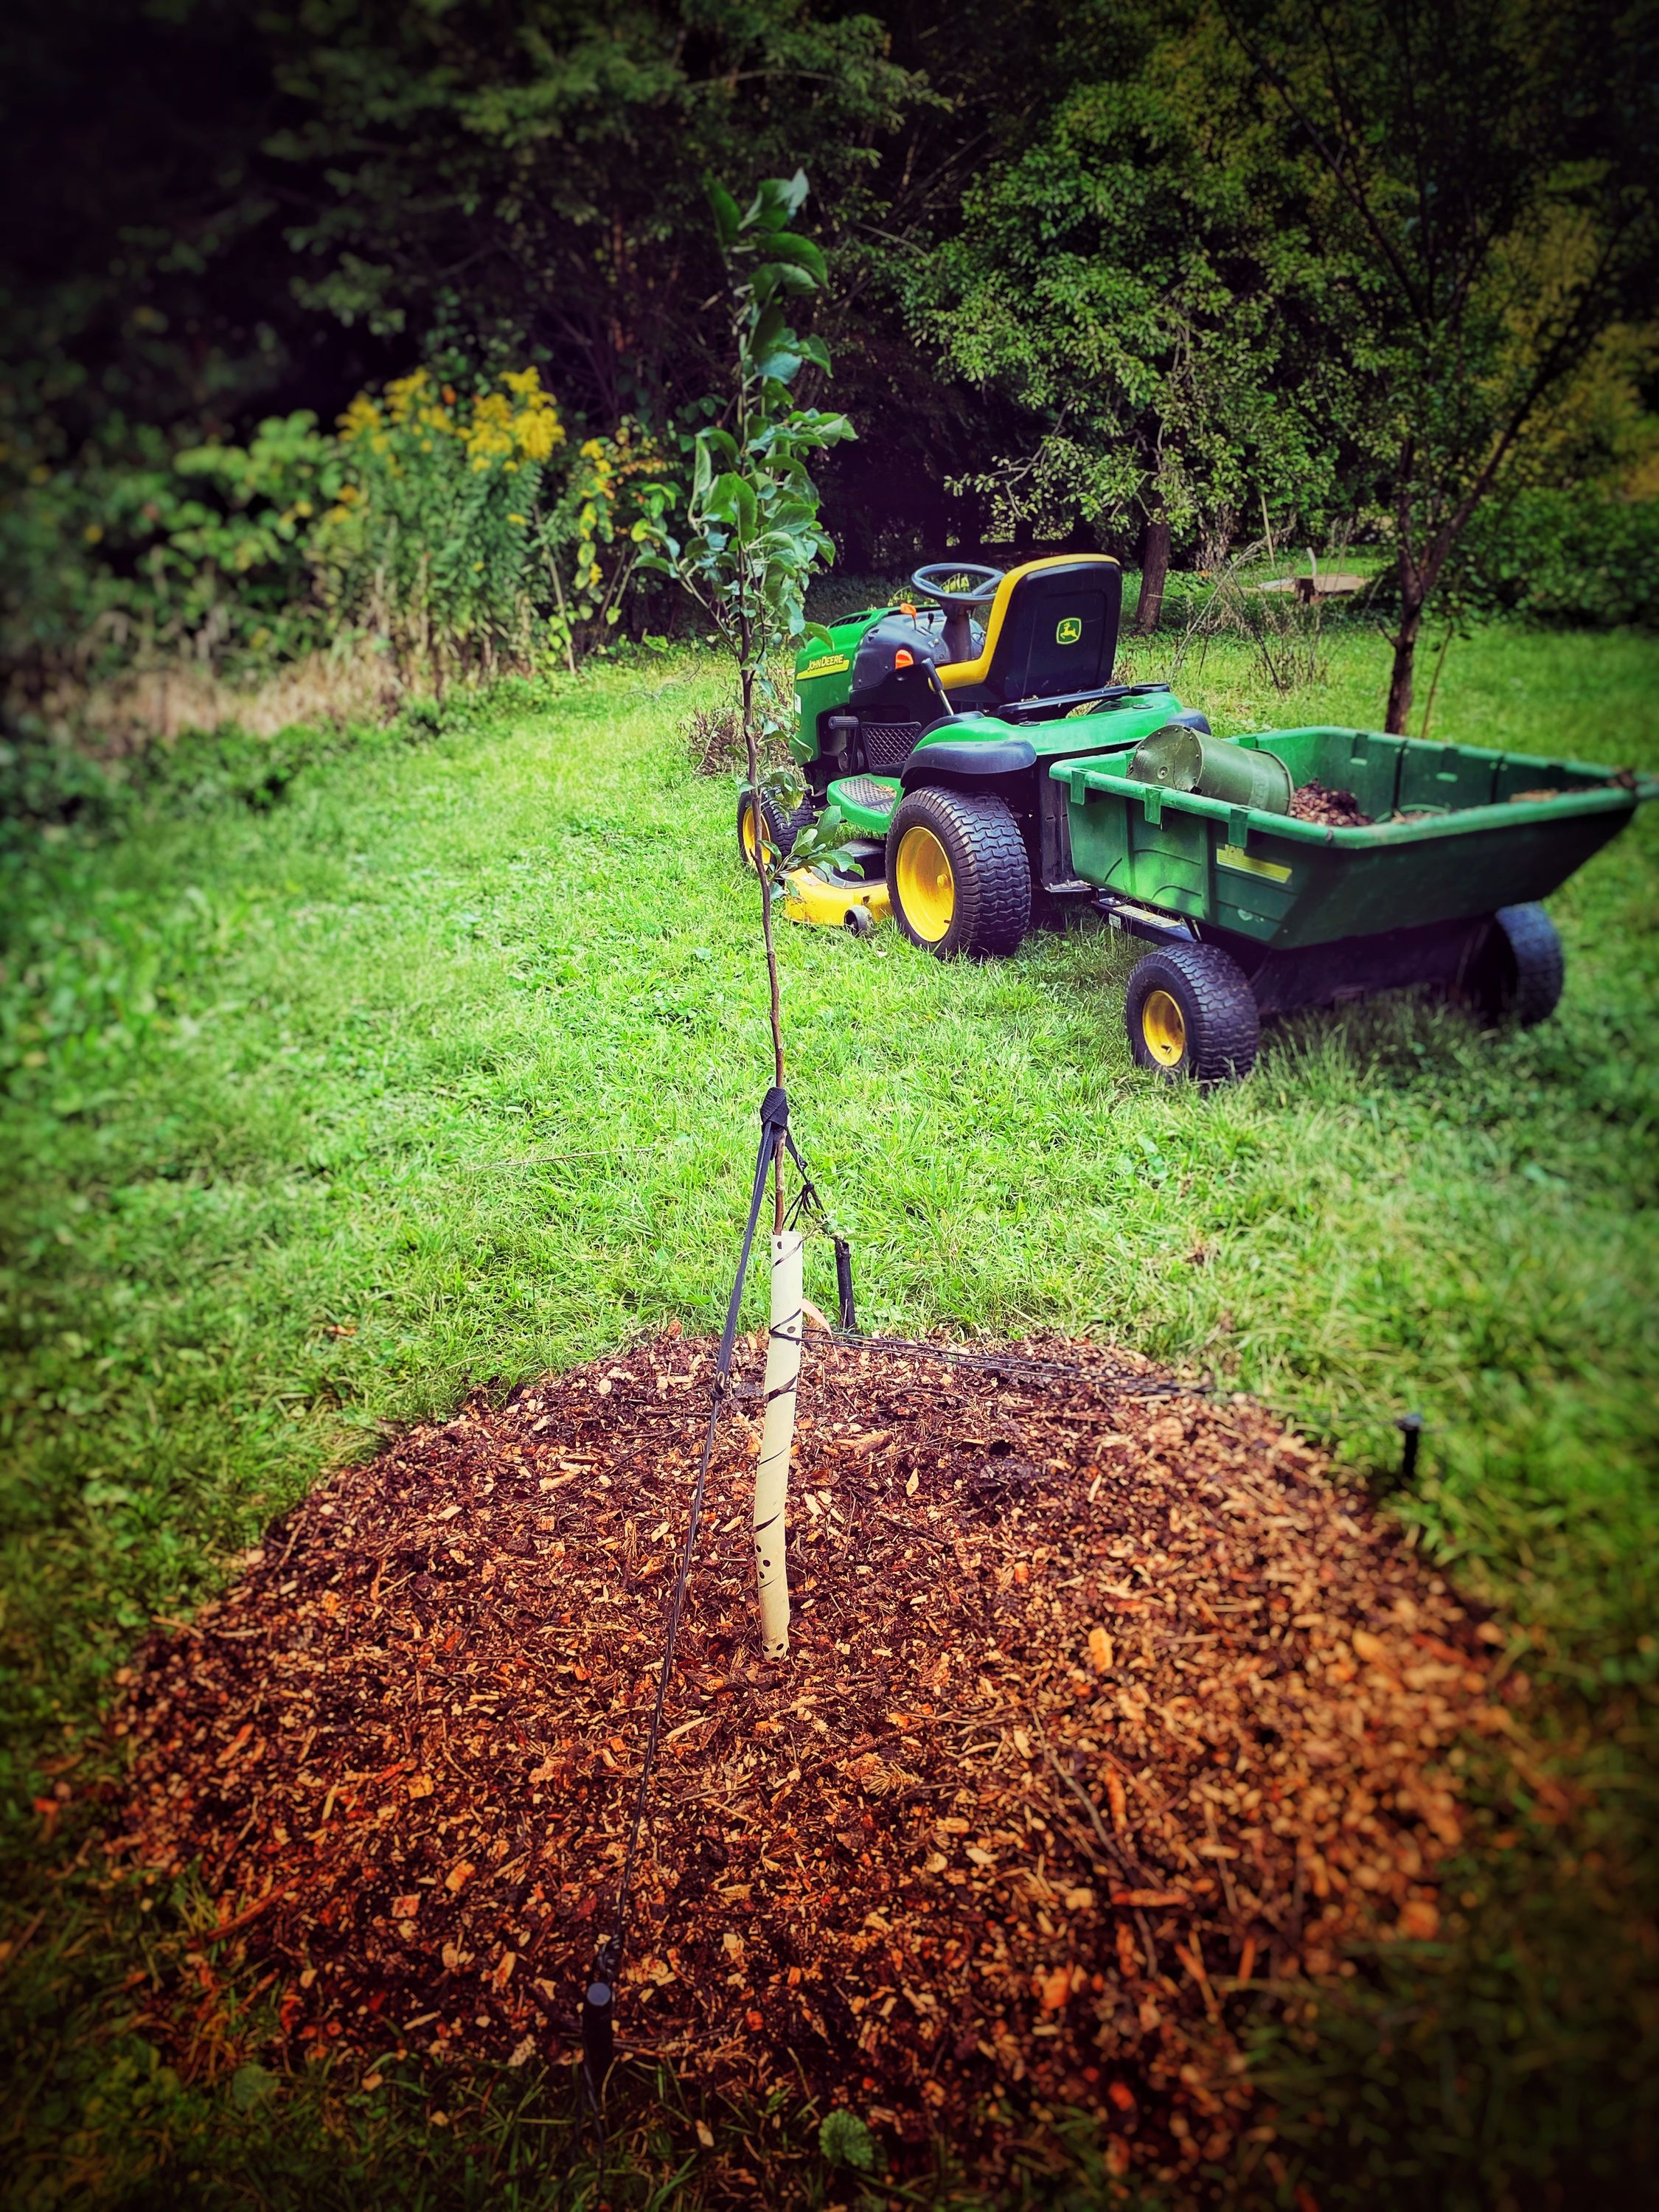 A sapling apple with recently applied wood mulch. A residential mower/tractor is in the background.